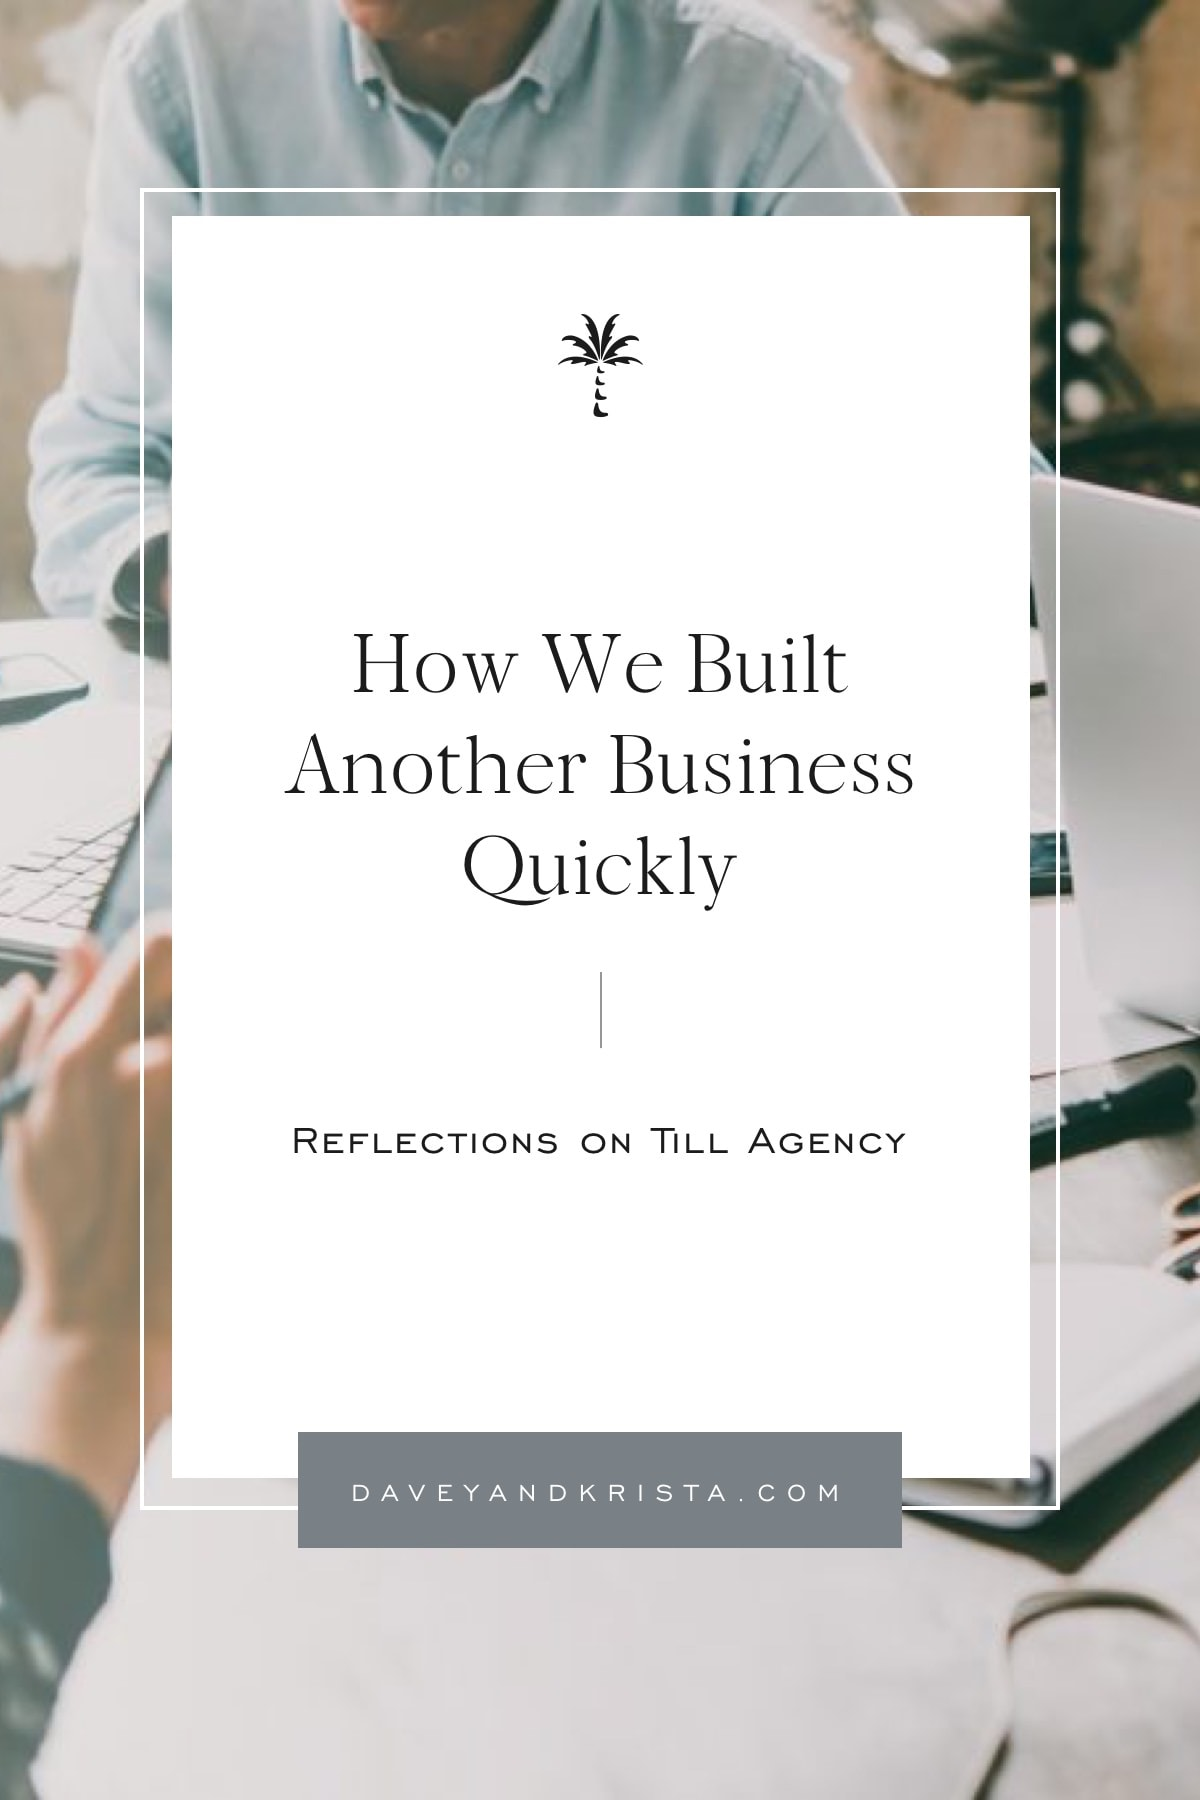 How We Build Another Business Quickly